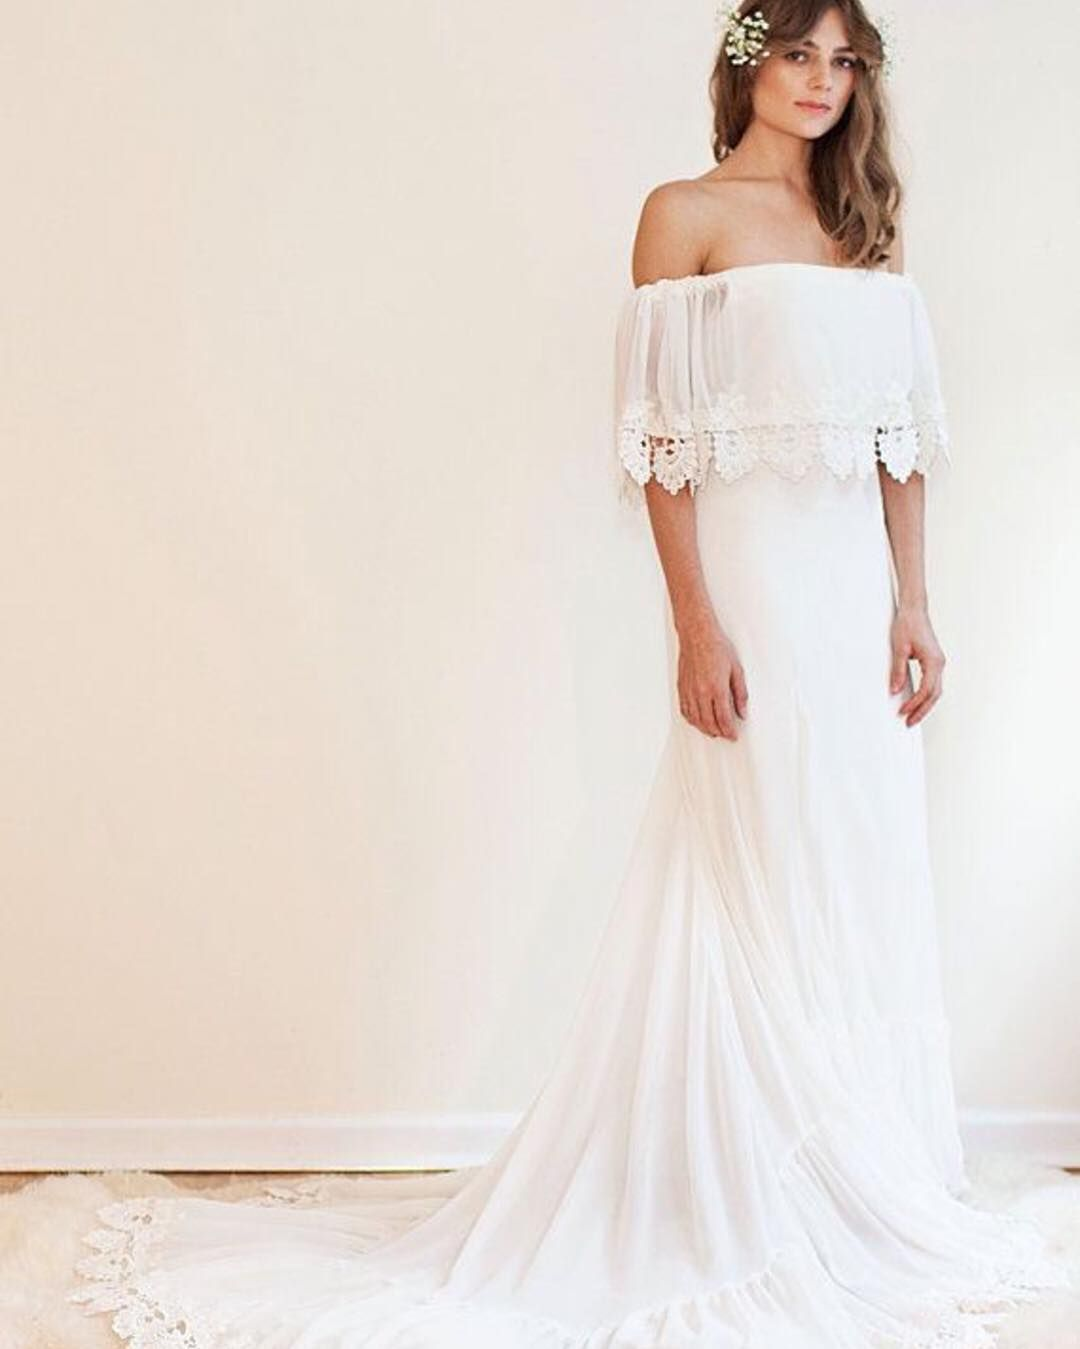 Bridal Salon In Orange County Ca Offering Wedding Gowns For The